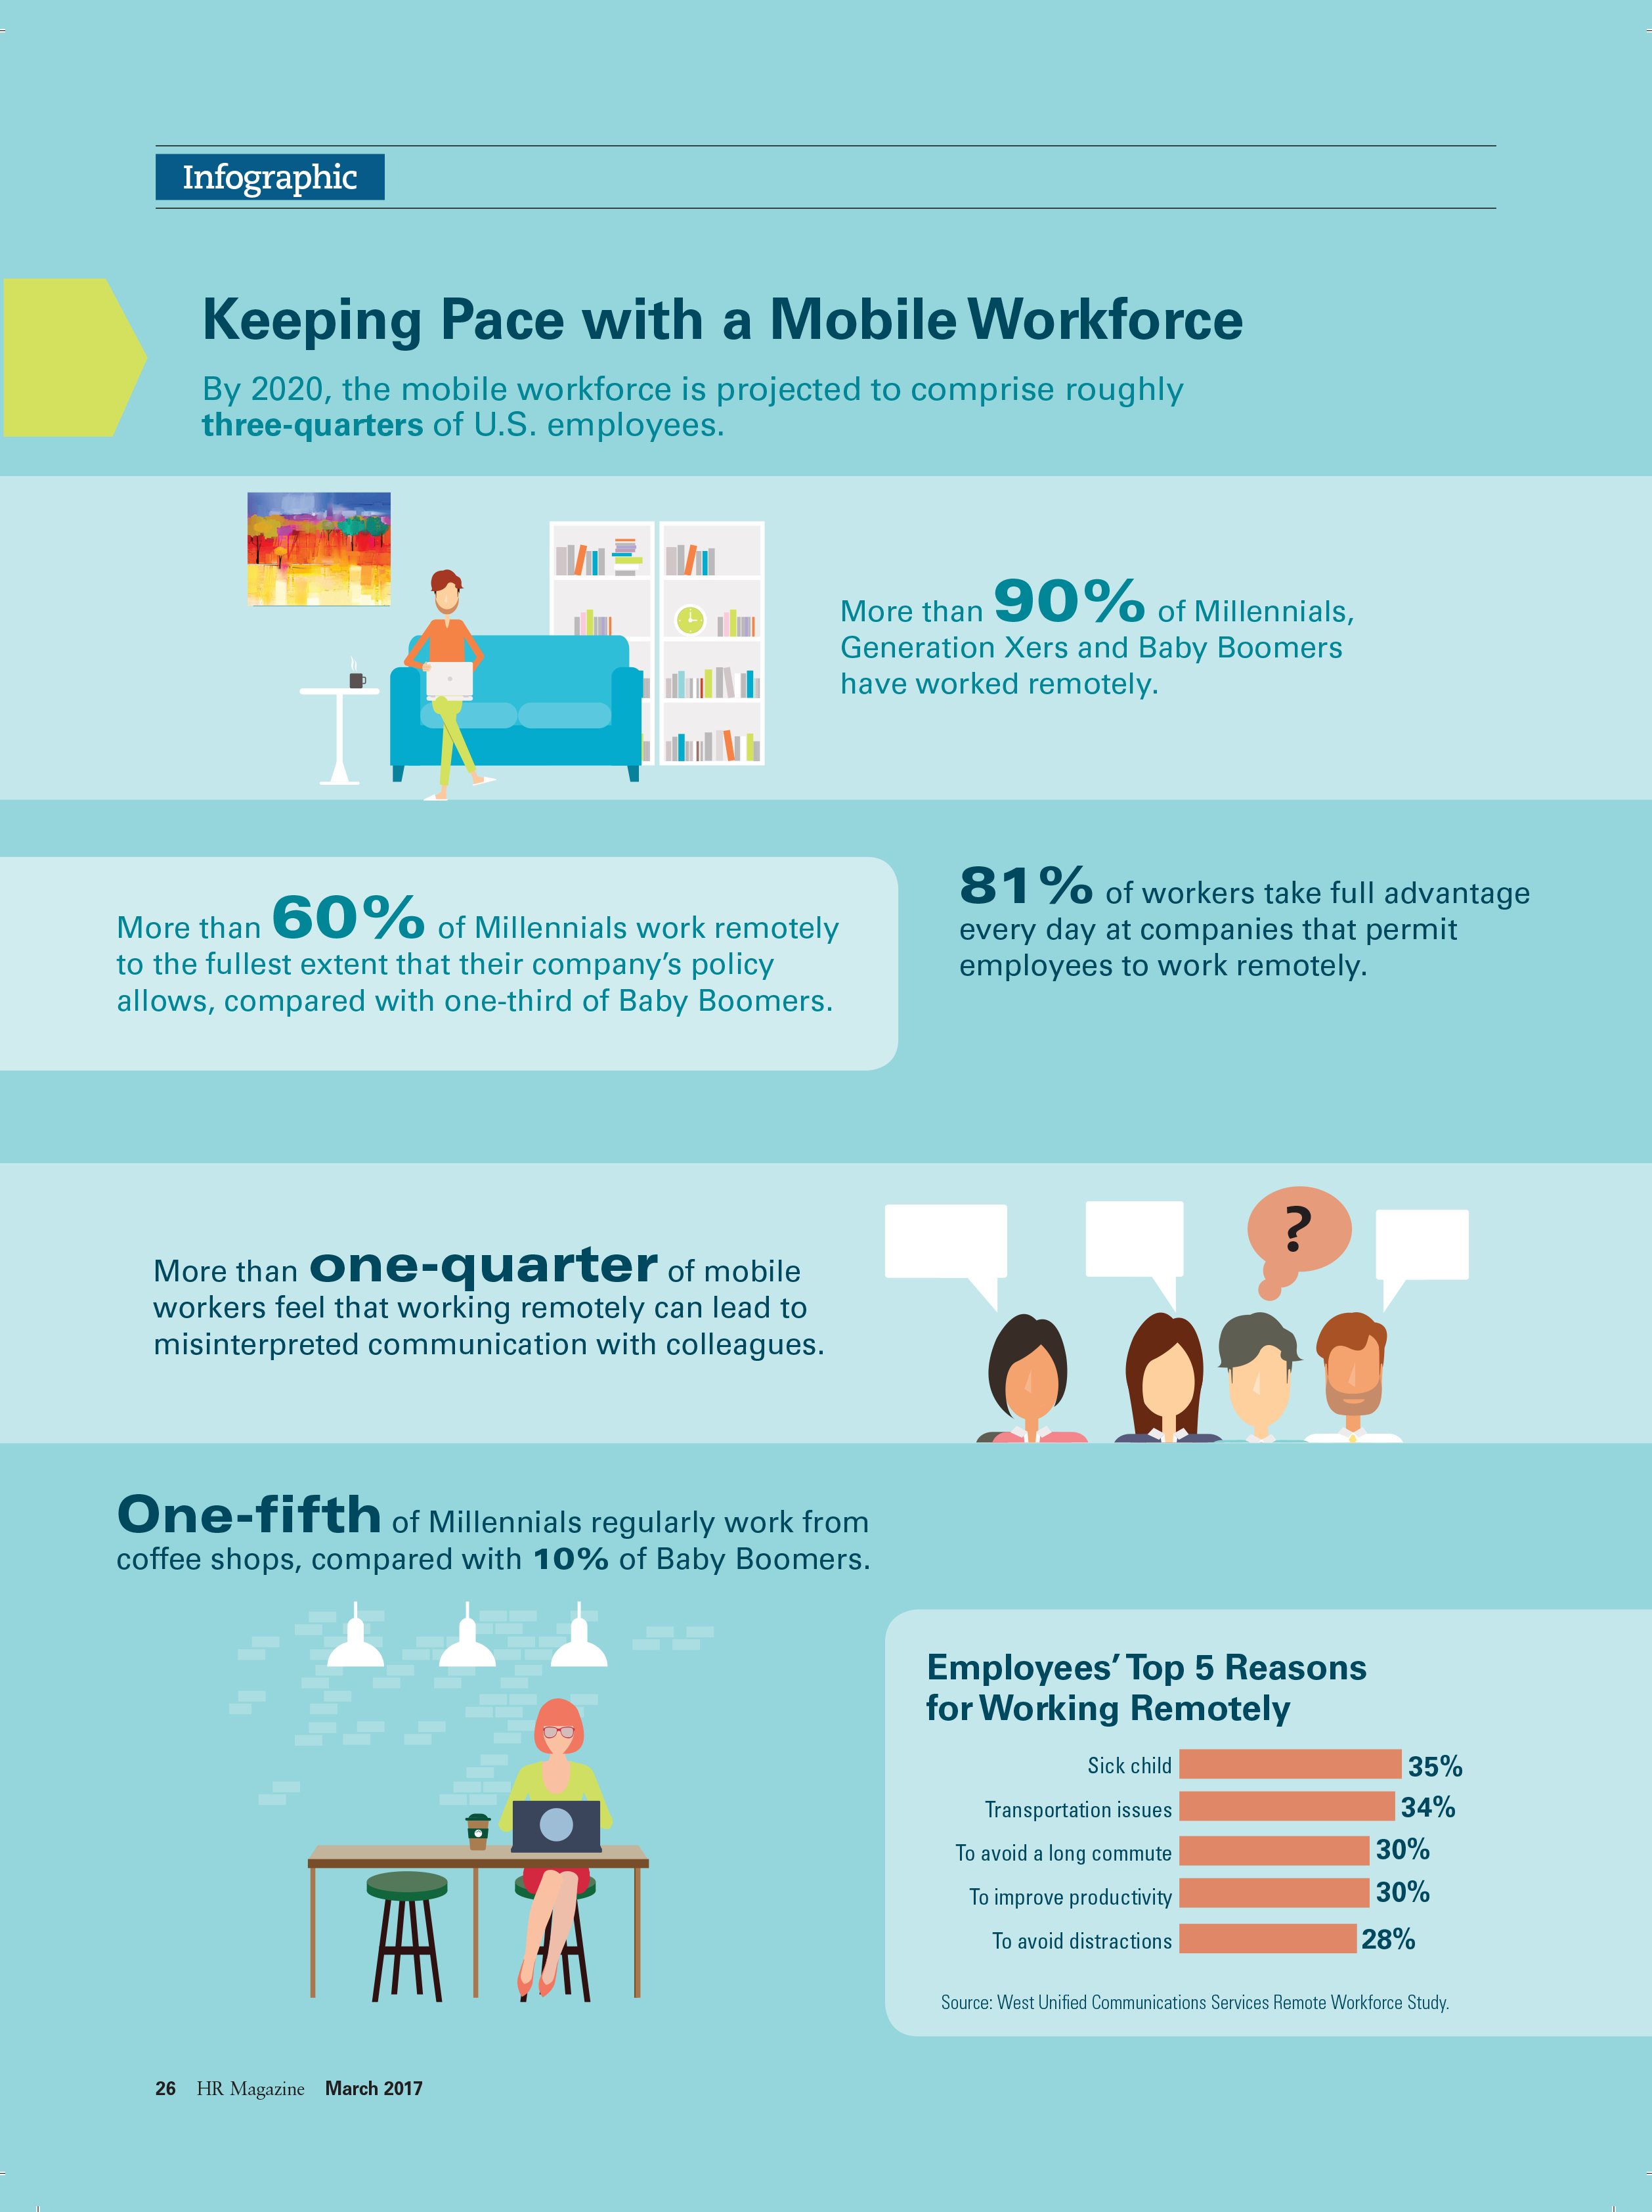 Keeping Pace with a Mobile Workforce (Infographic)